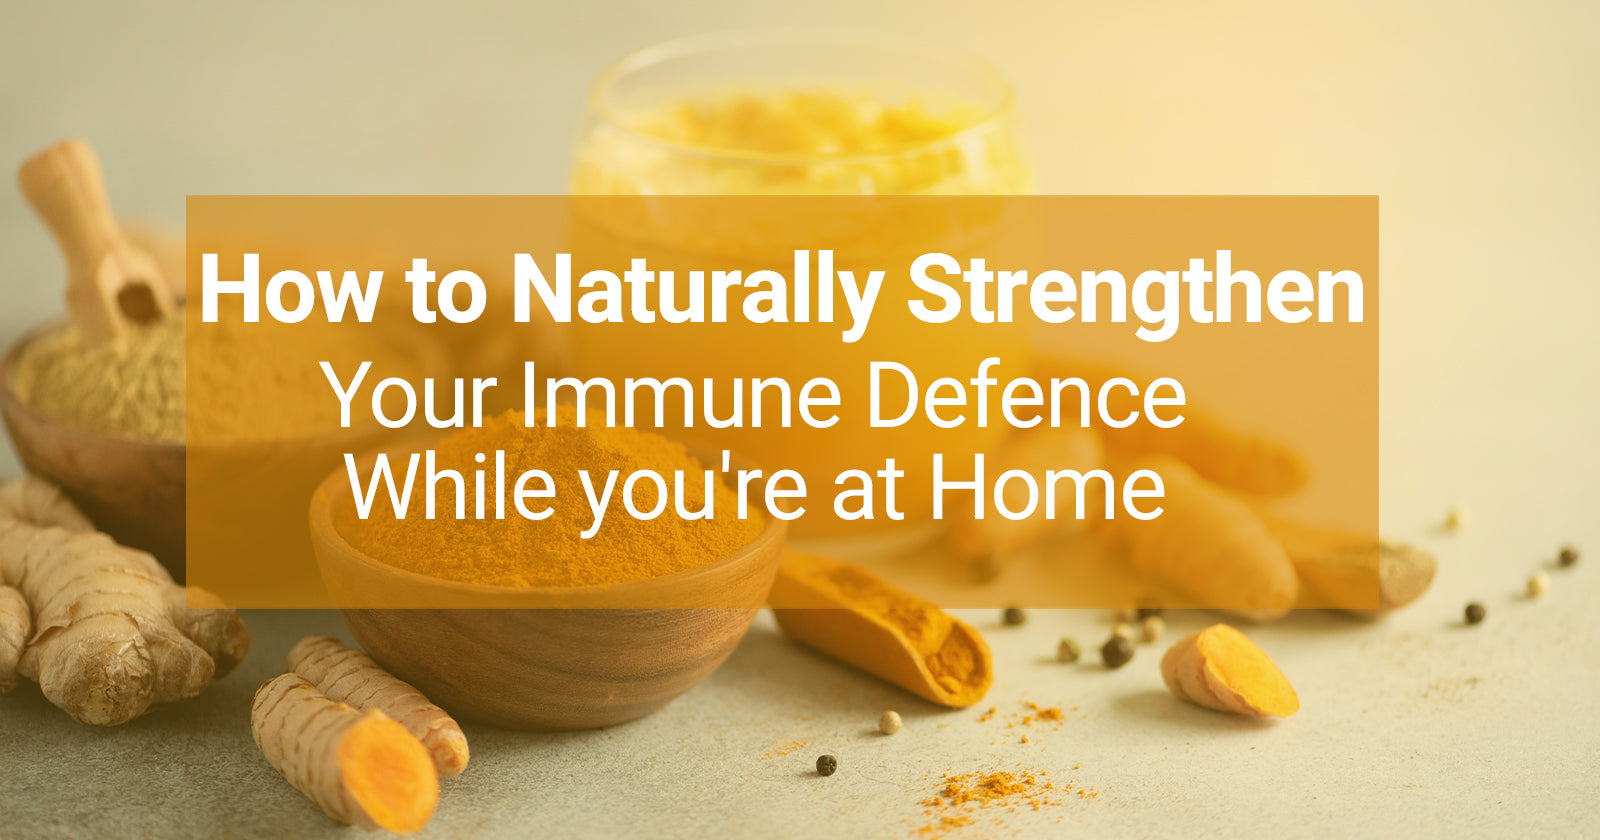 How to Naturally Strengthen Your Immune Defence - While you're at Home